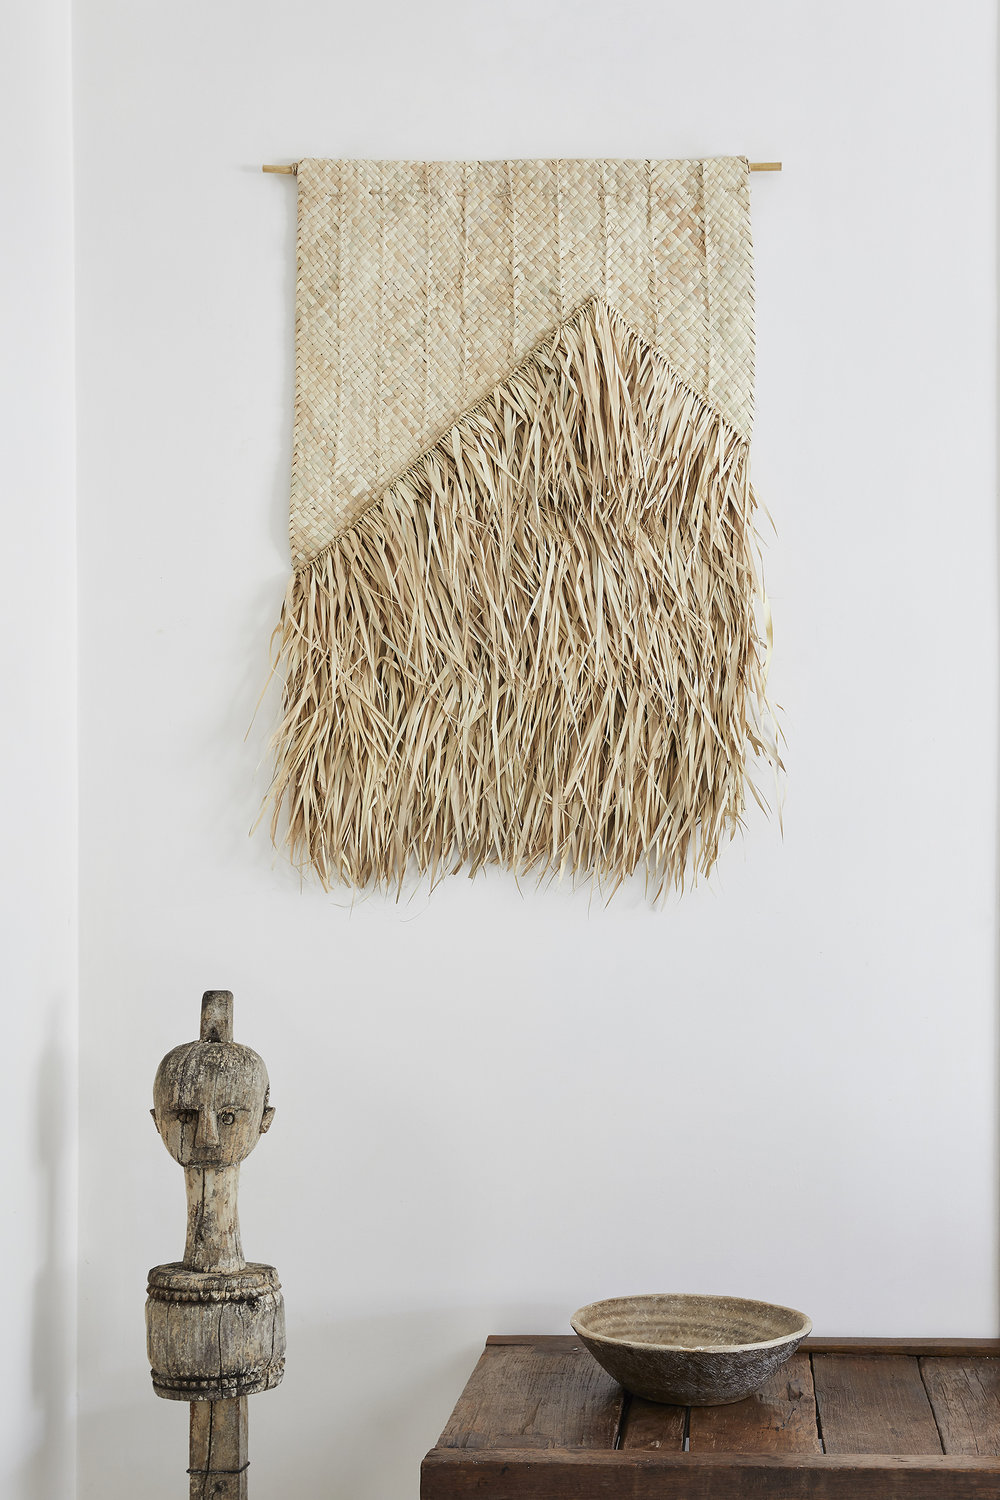 Amua wall hanging from The Dharma Door